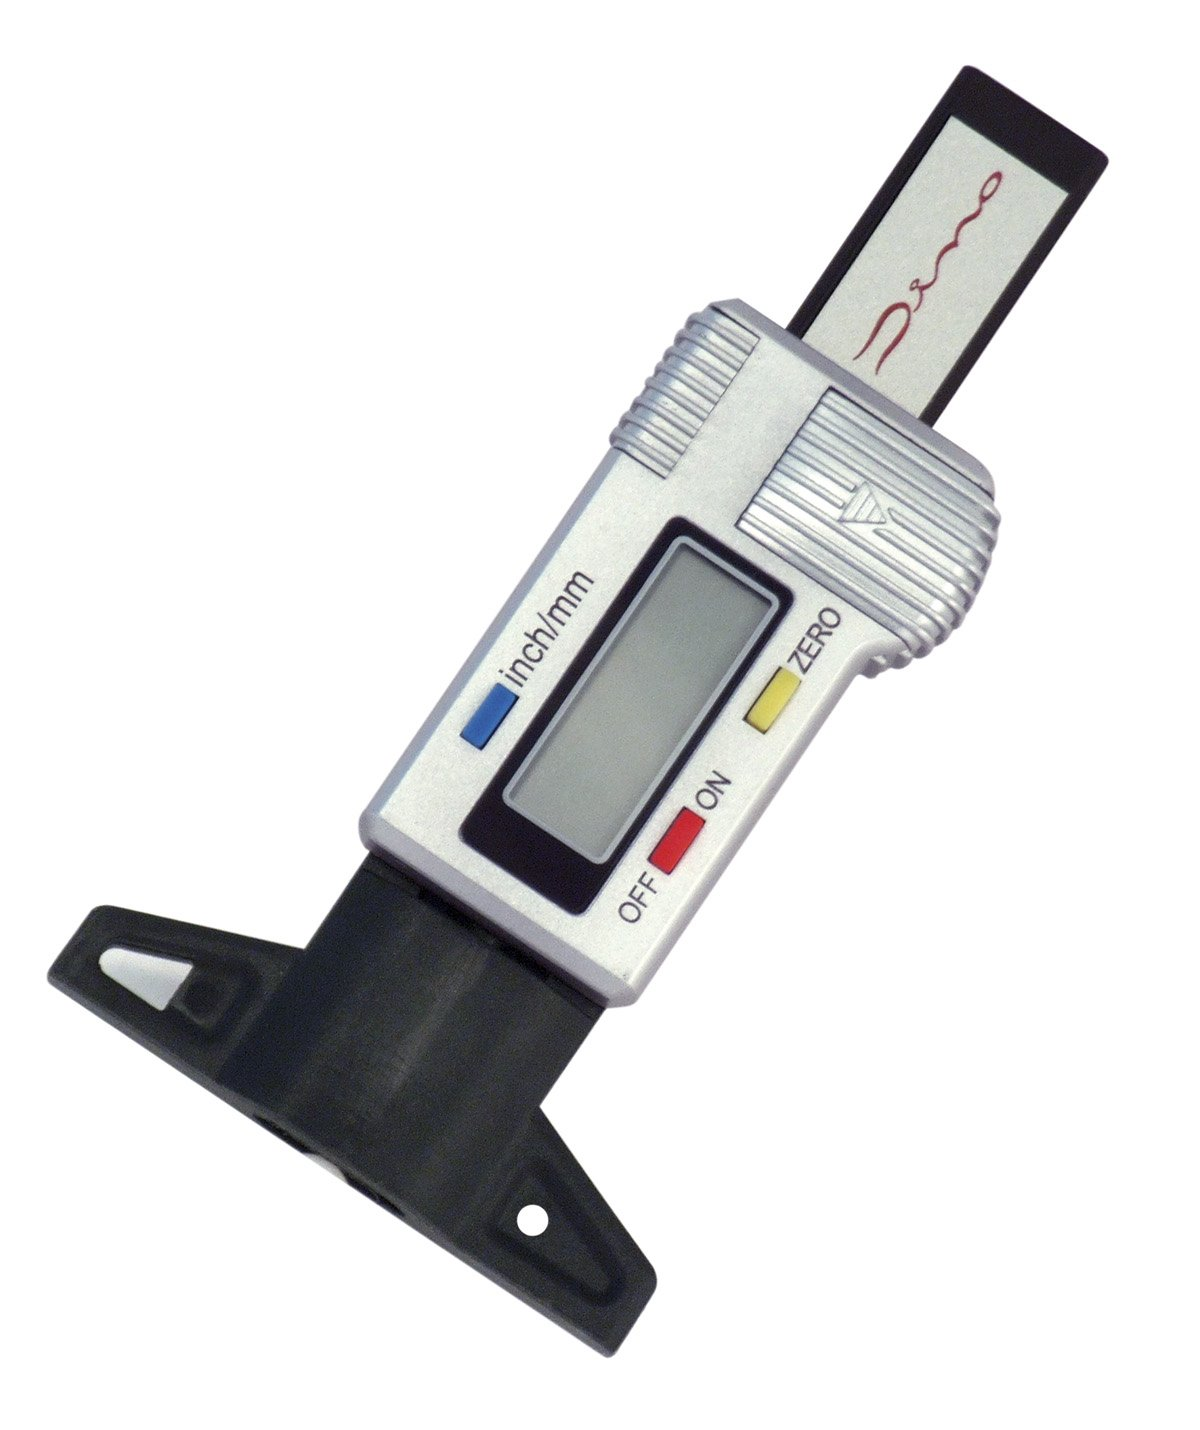 Dino 130005 - Misuratore digitale del battistrada, con display LCD, batteria inclusa